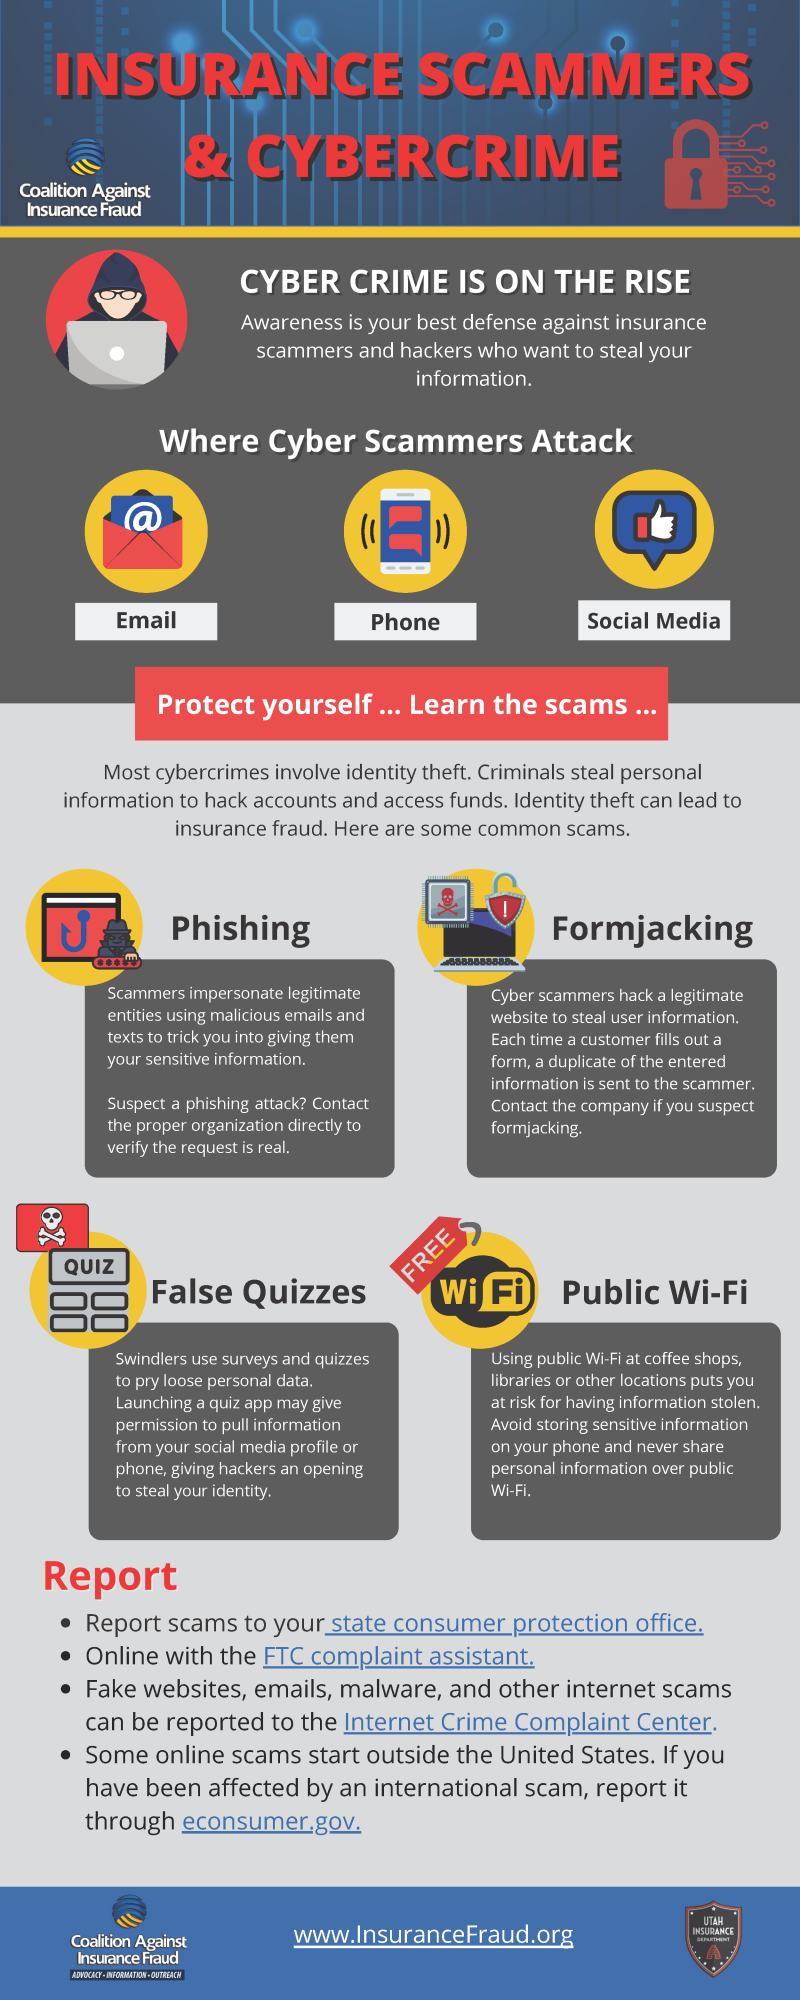 Description of cyber crime and insurance scams